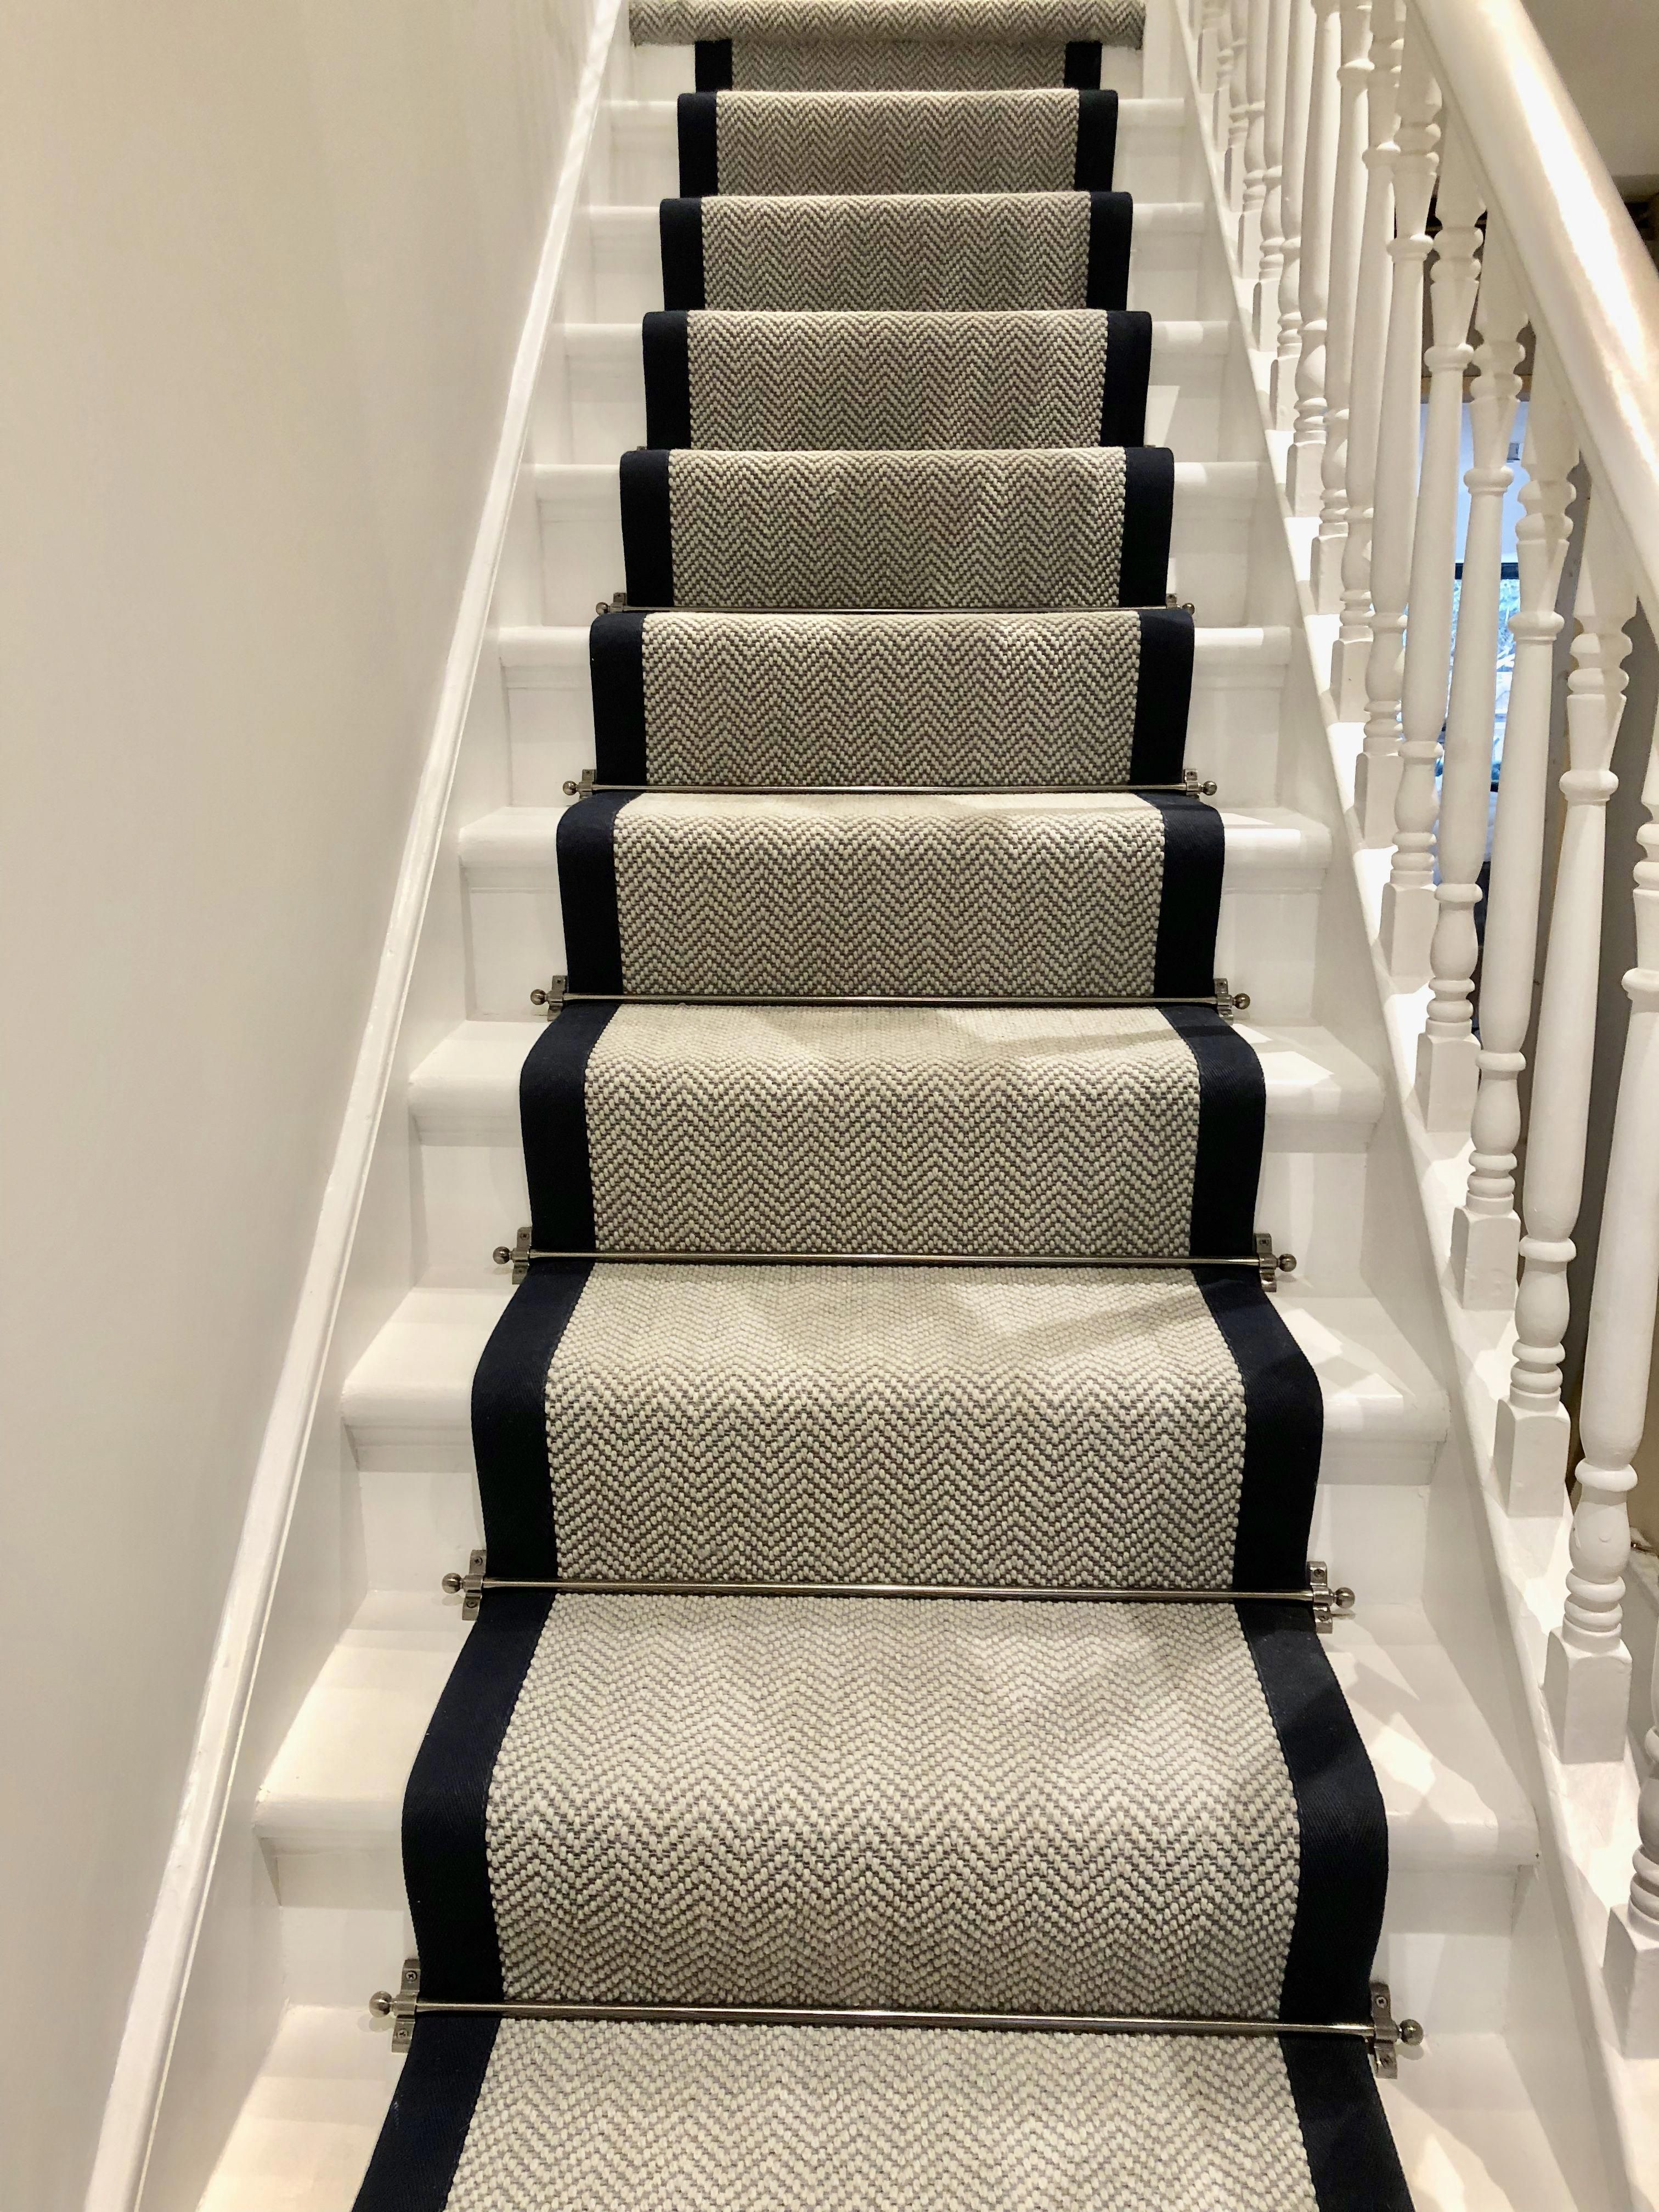 Best Carpet Runners With Rubber Backing Pickndecor Com 400 x 300